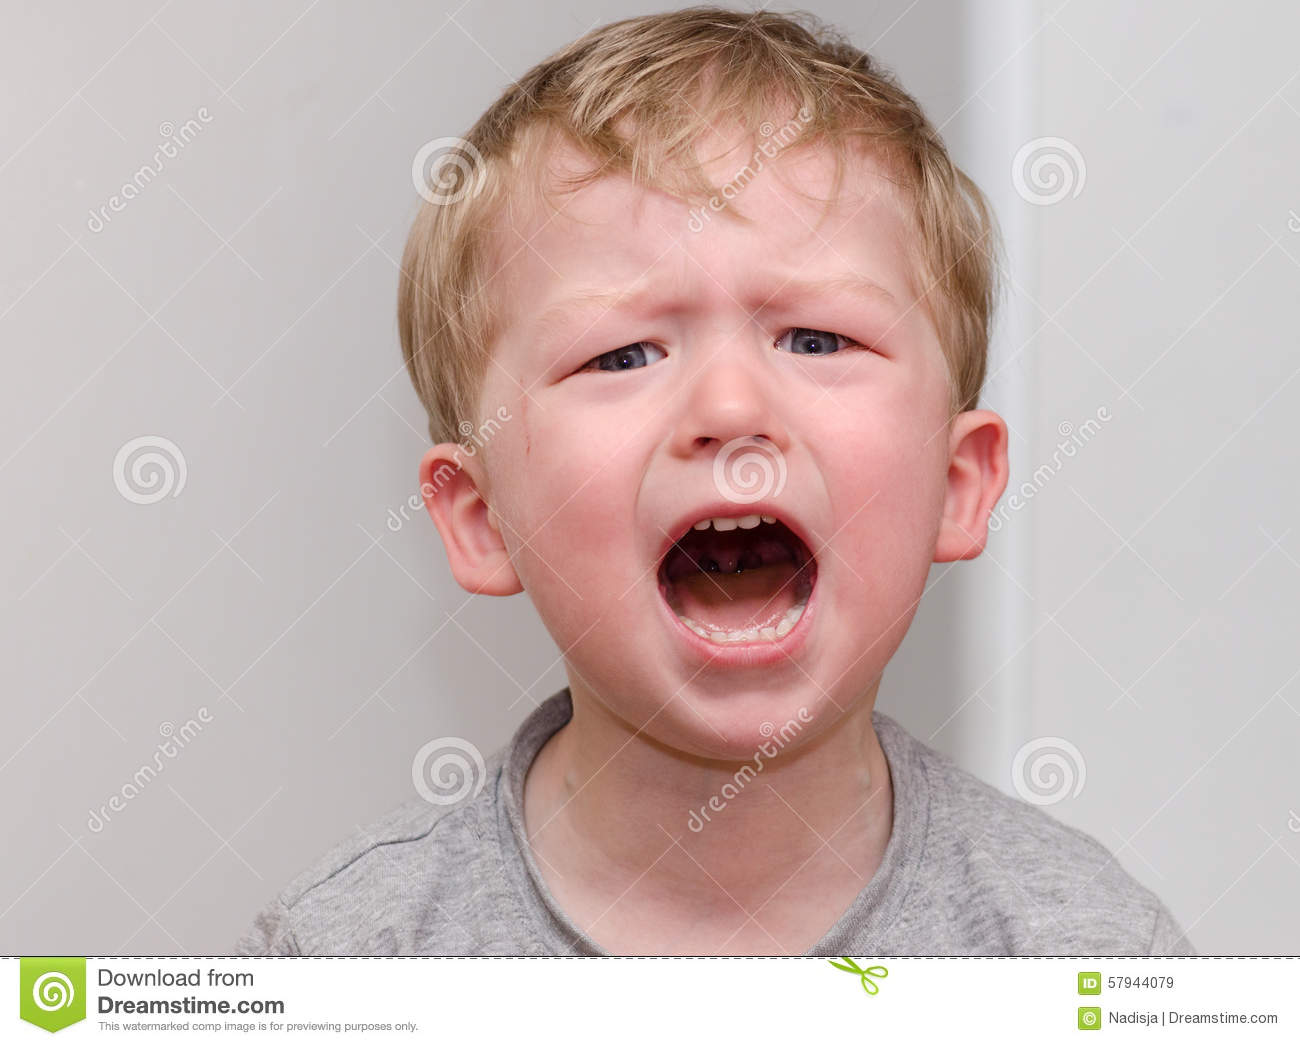 the little angry crying blond boy closeup stock image image of